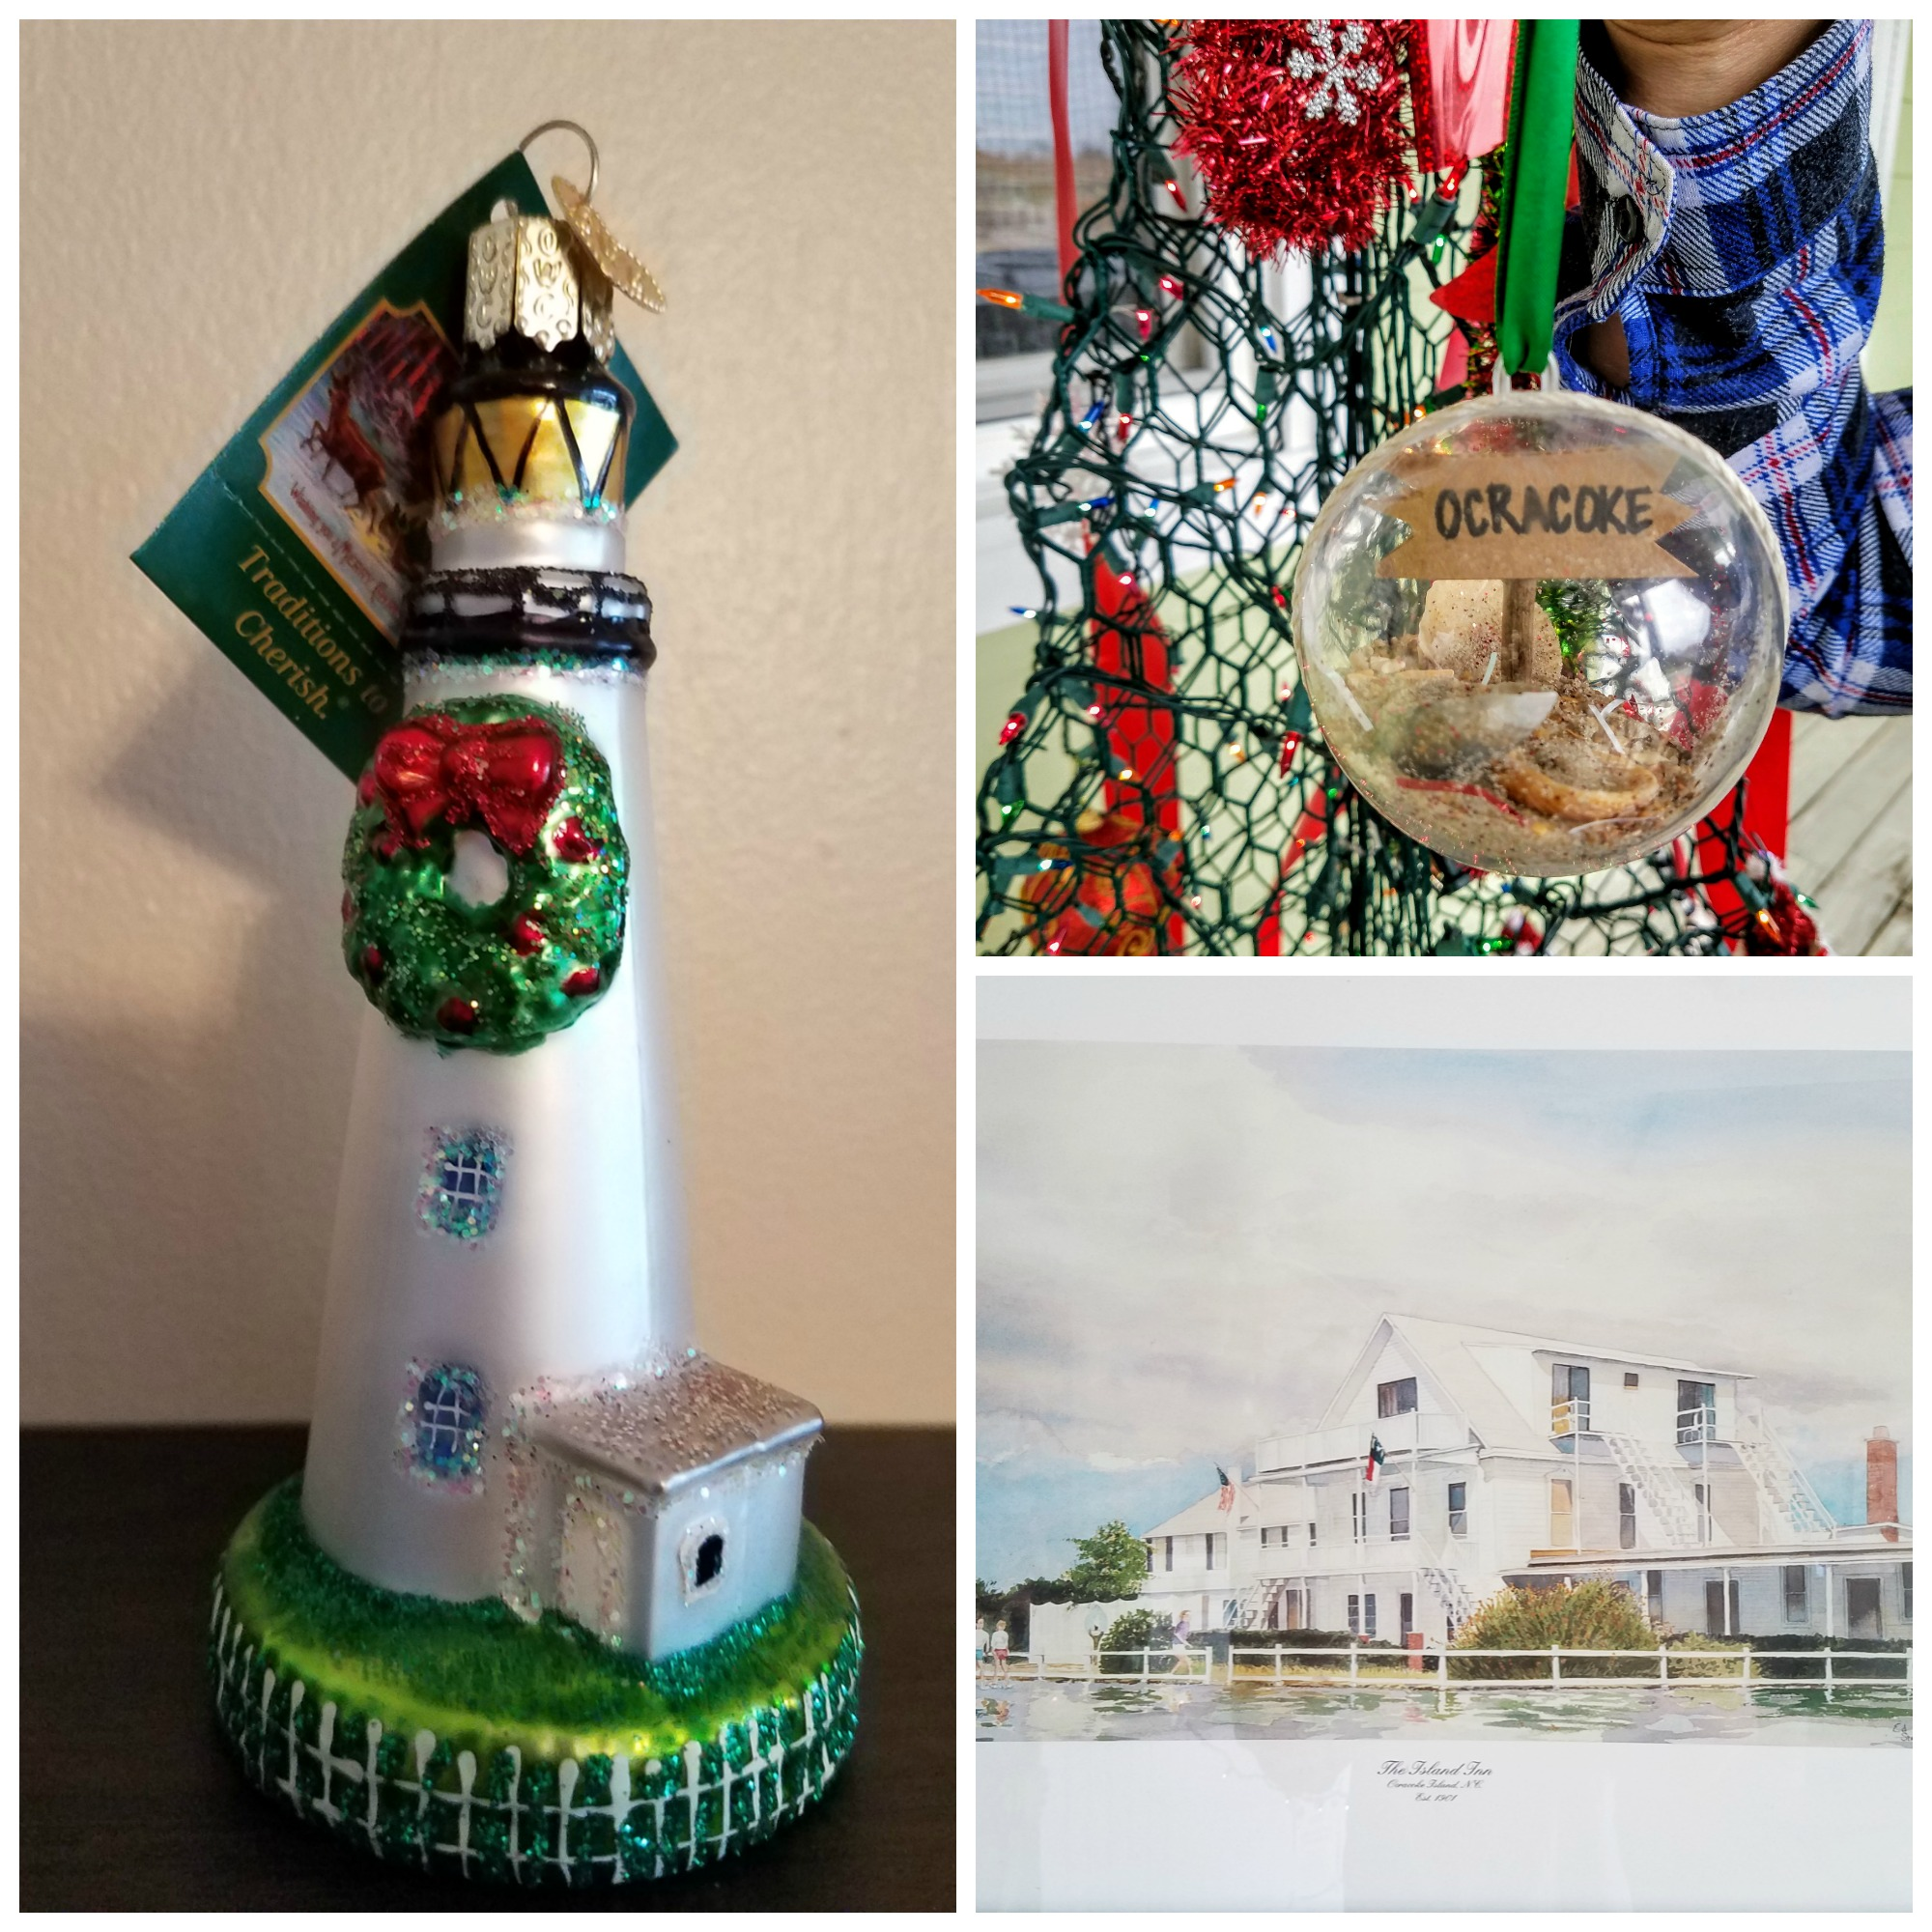 2018 Ocracoke Island Realty Christmas Cheer